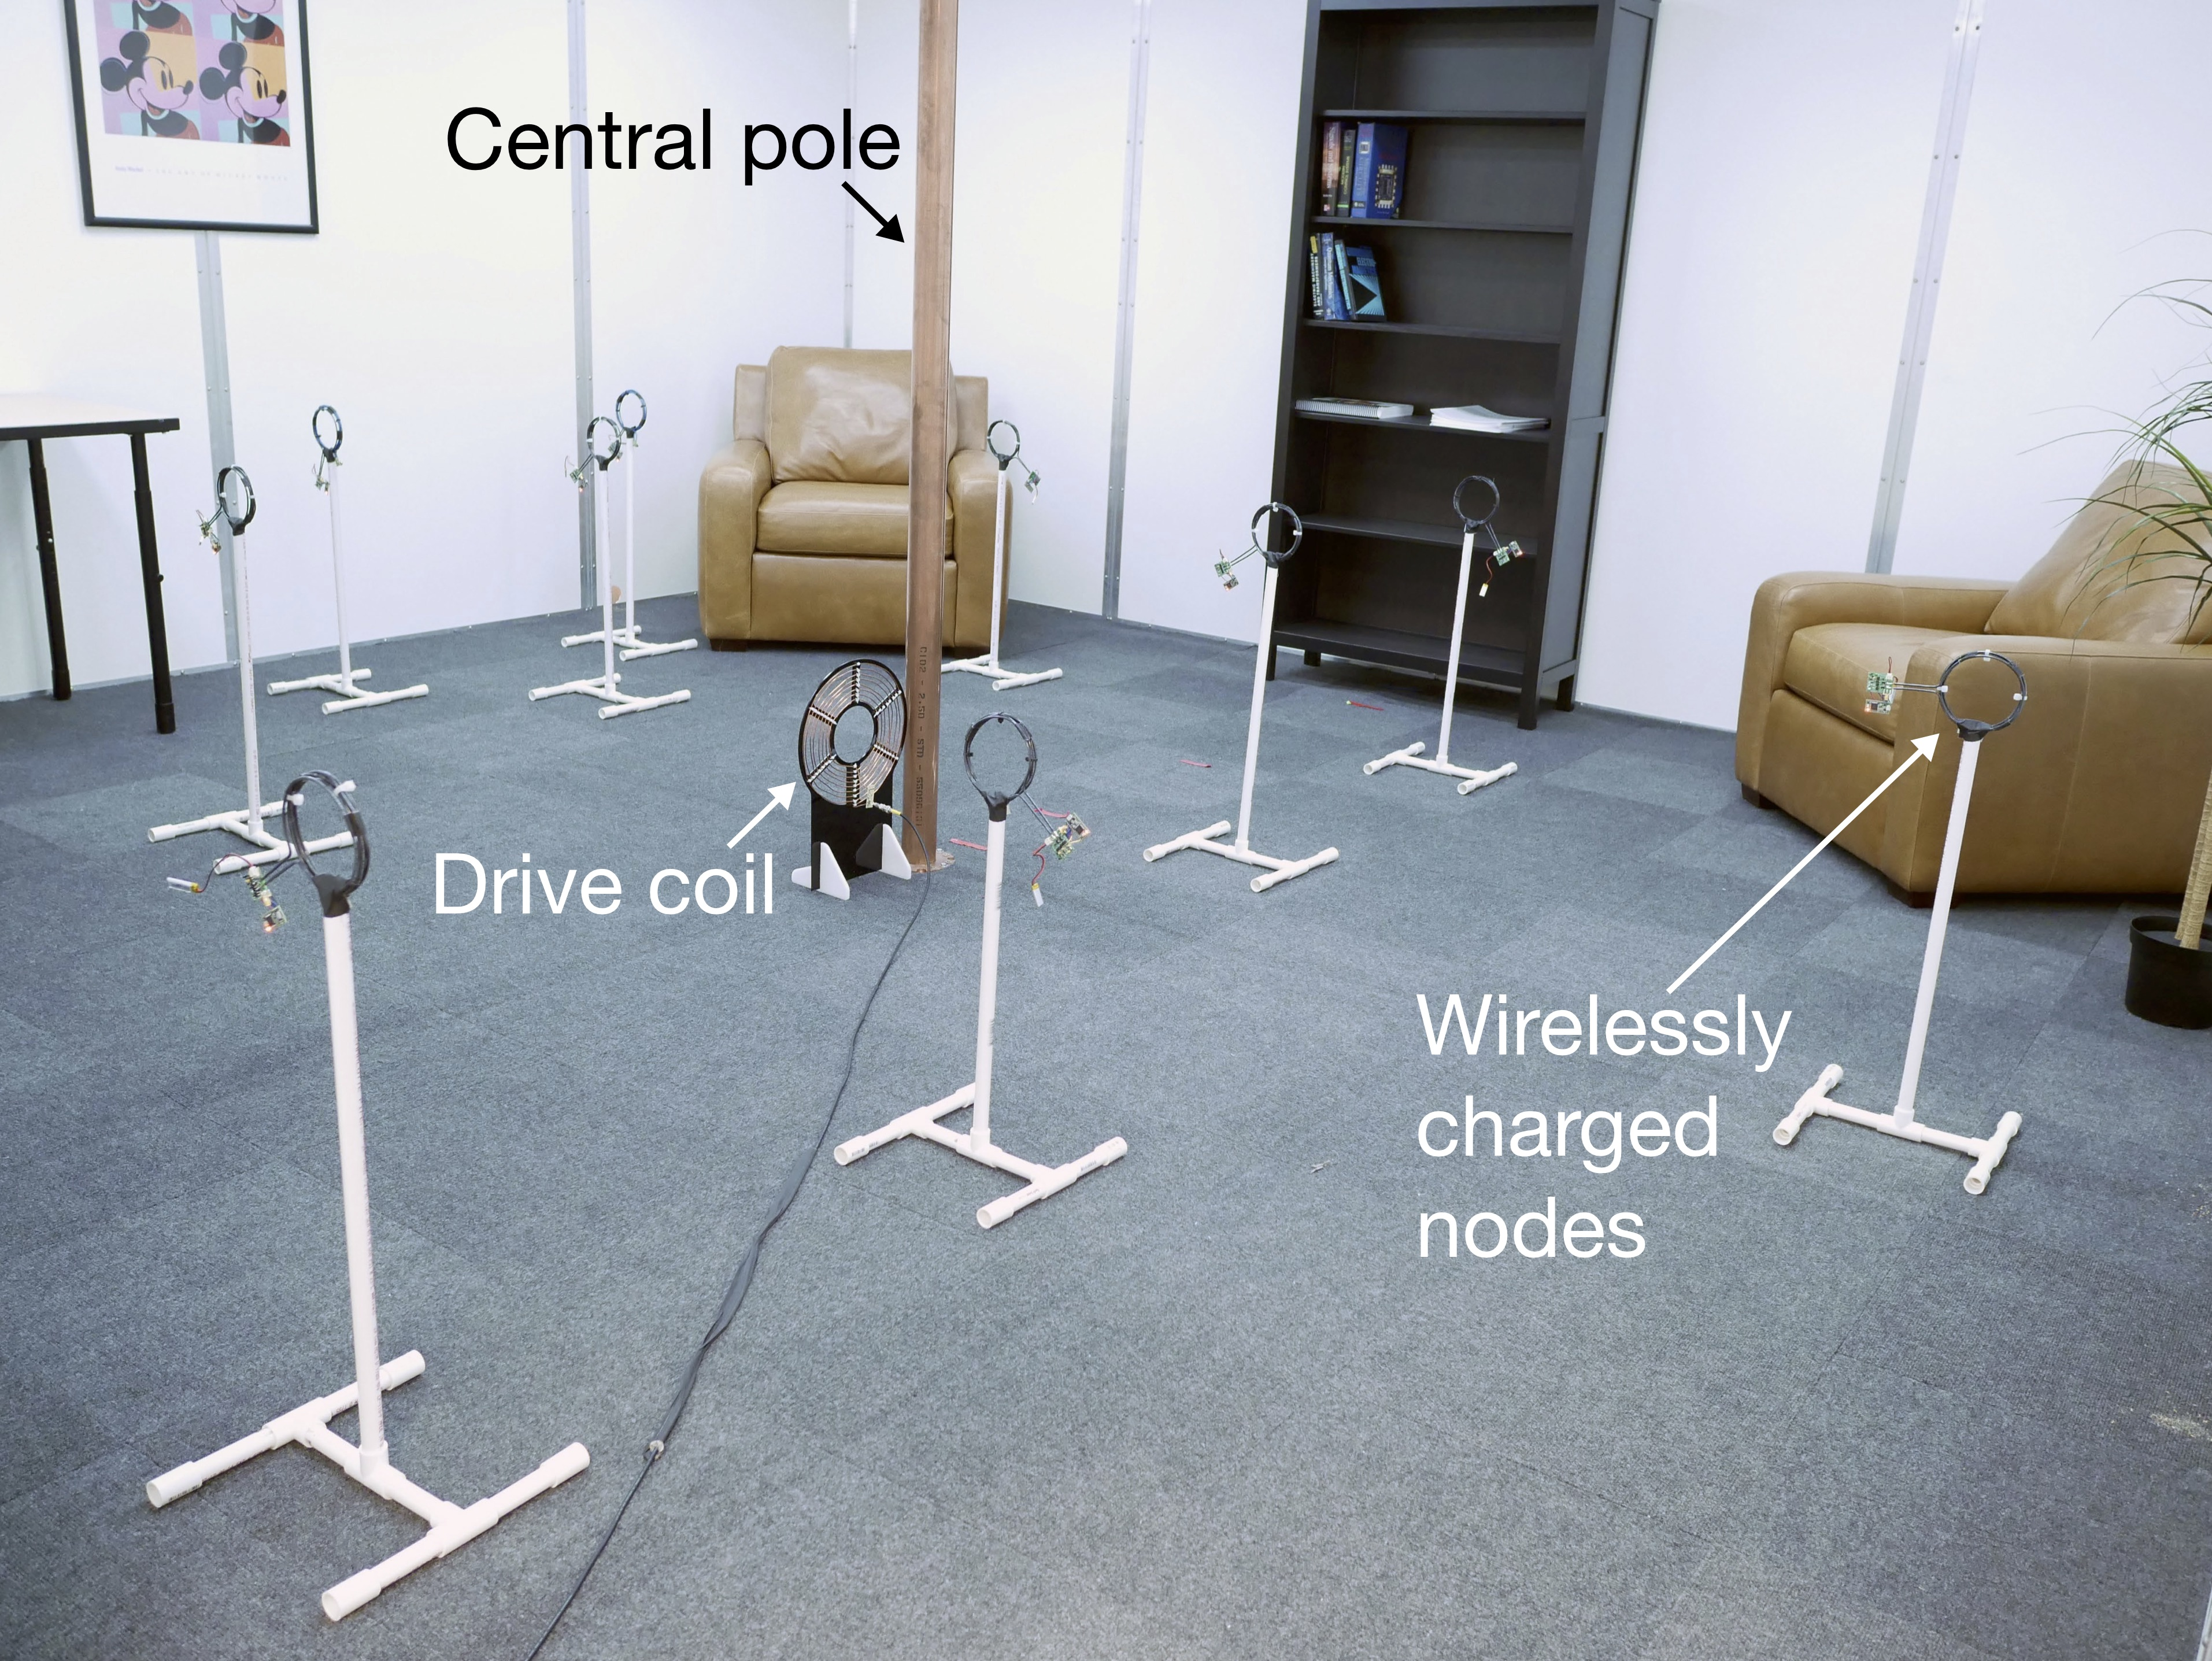 Inside a blue grey office room. Several white stands with bundles of wires wrapped around them in loops are scattered around the room. In the centre is a larger black loop of wire on a small stand.